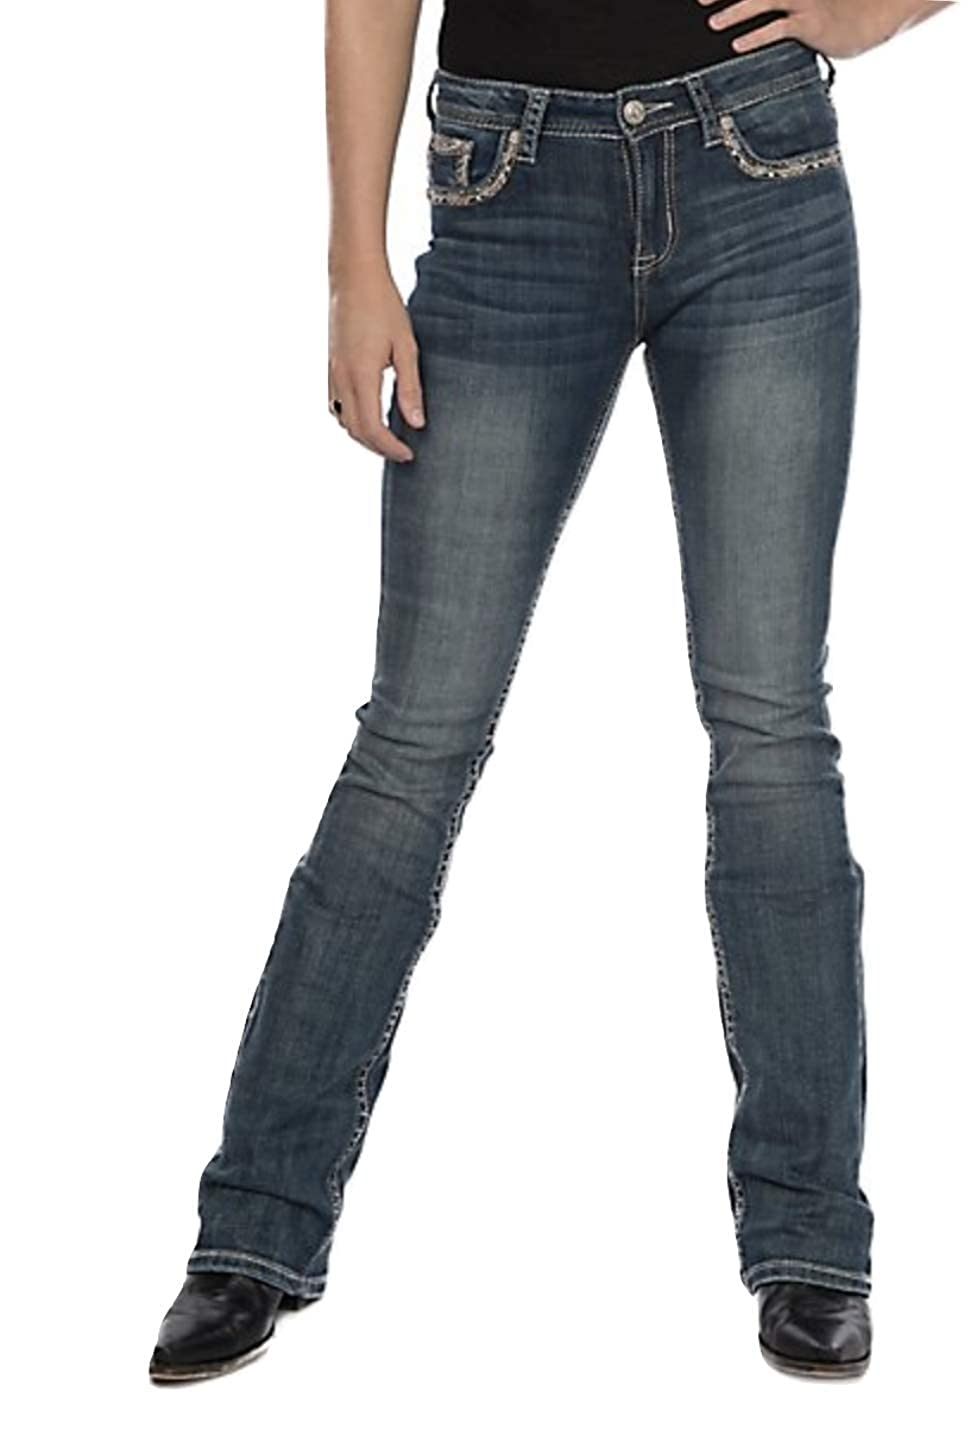 Grace in LA Mid Rise Easy Boot Rhinestone Gold Tone Feather Embellished Pocket Bootcut Stretch Jeans